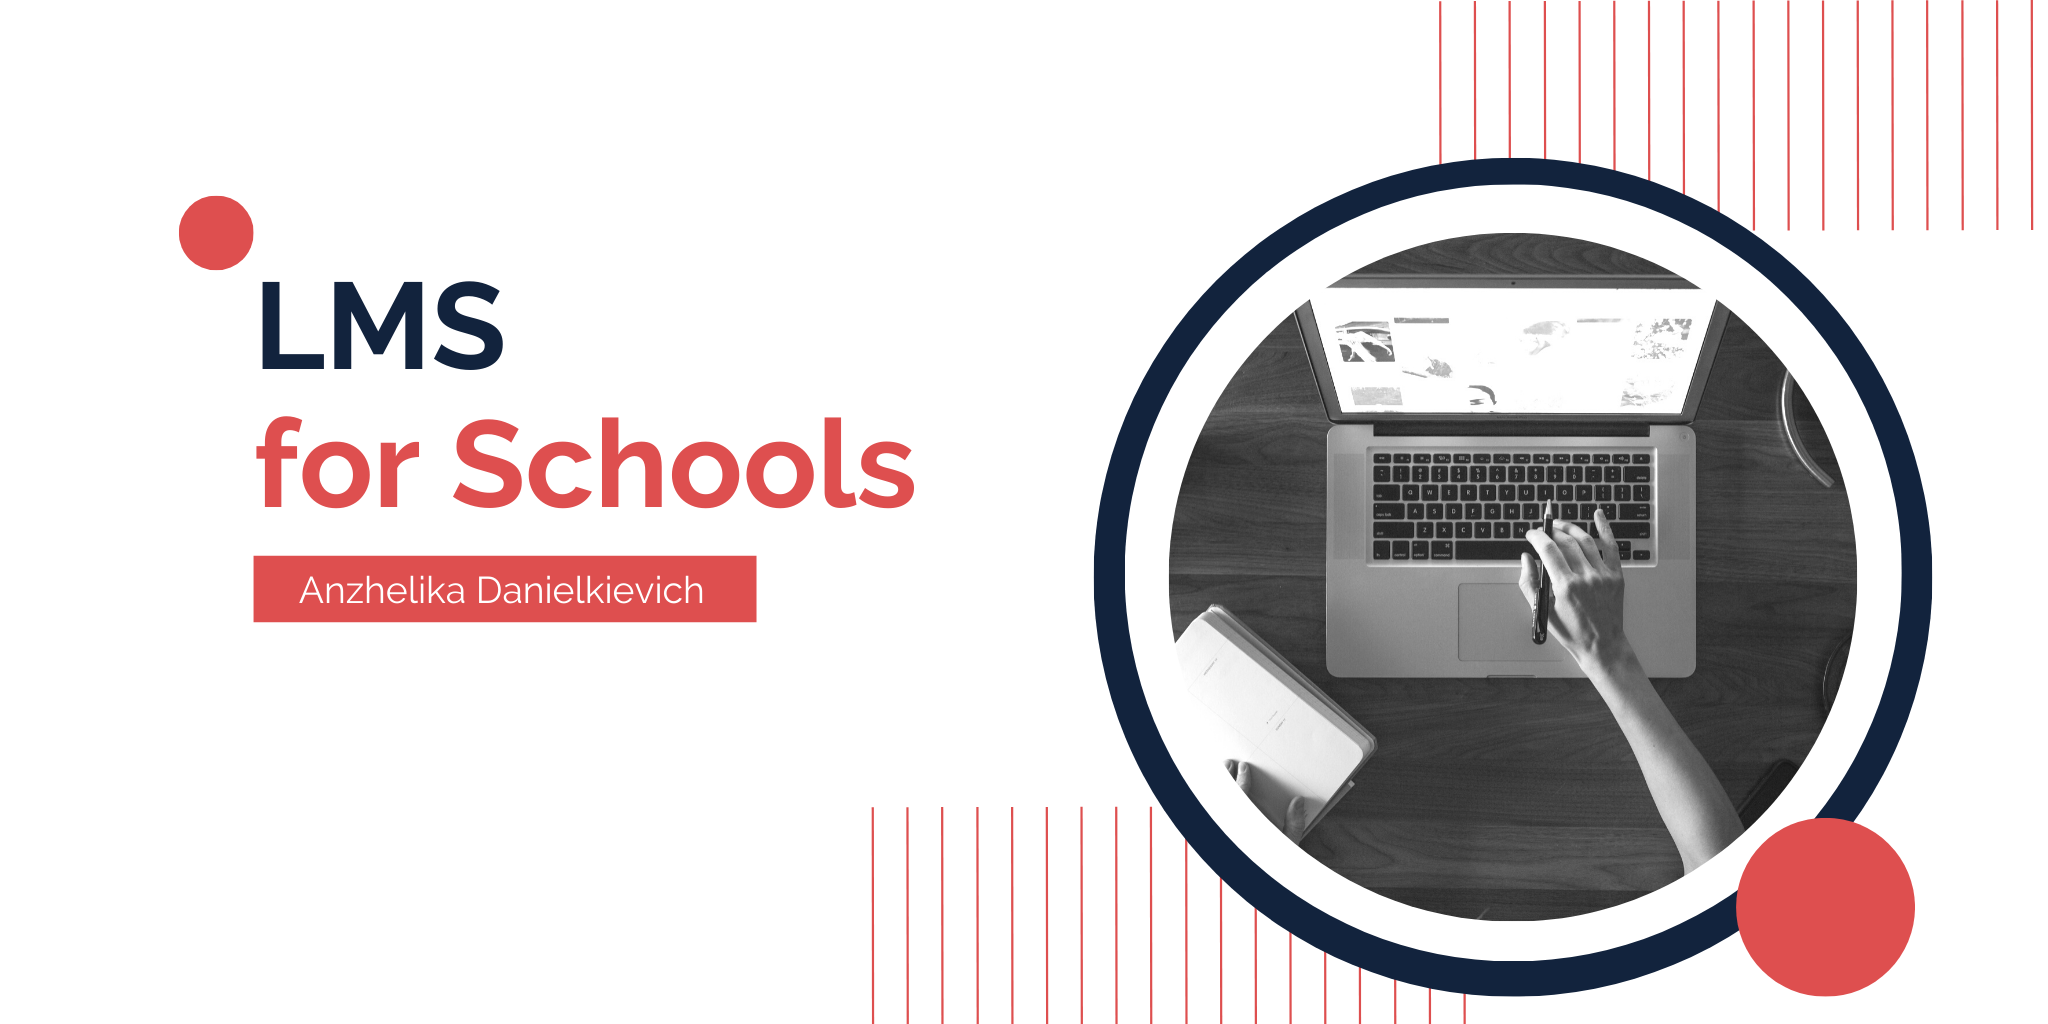 LMS for Schools: Take School Management to a New Level